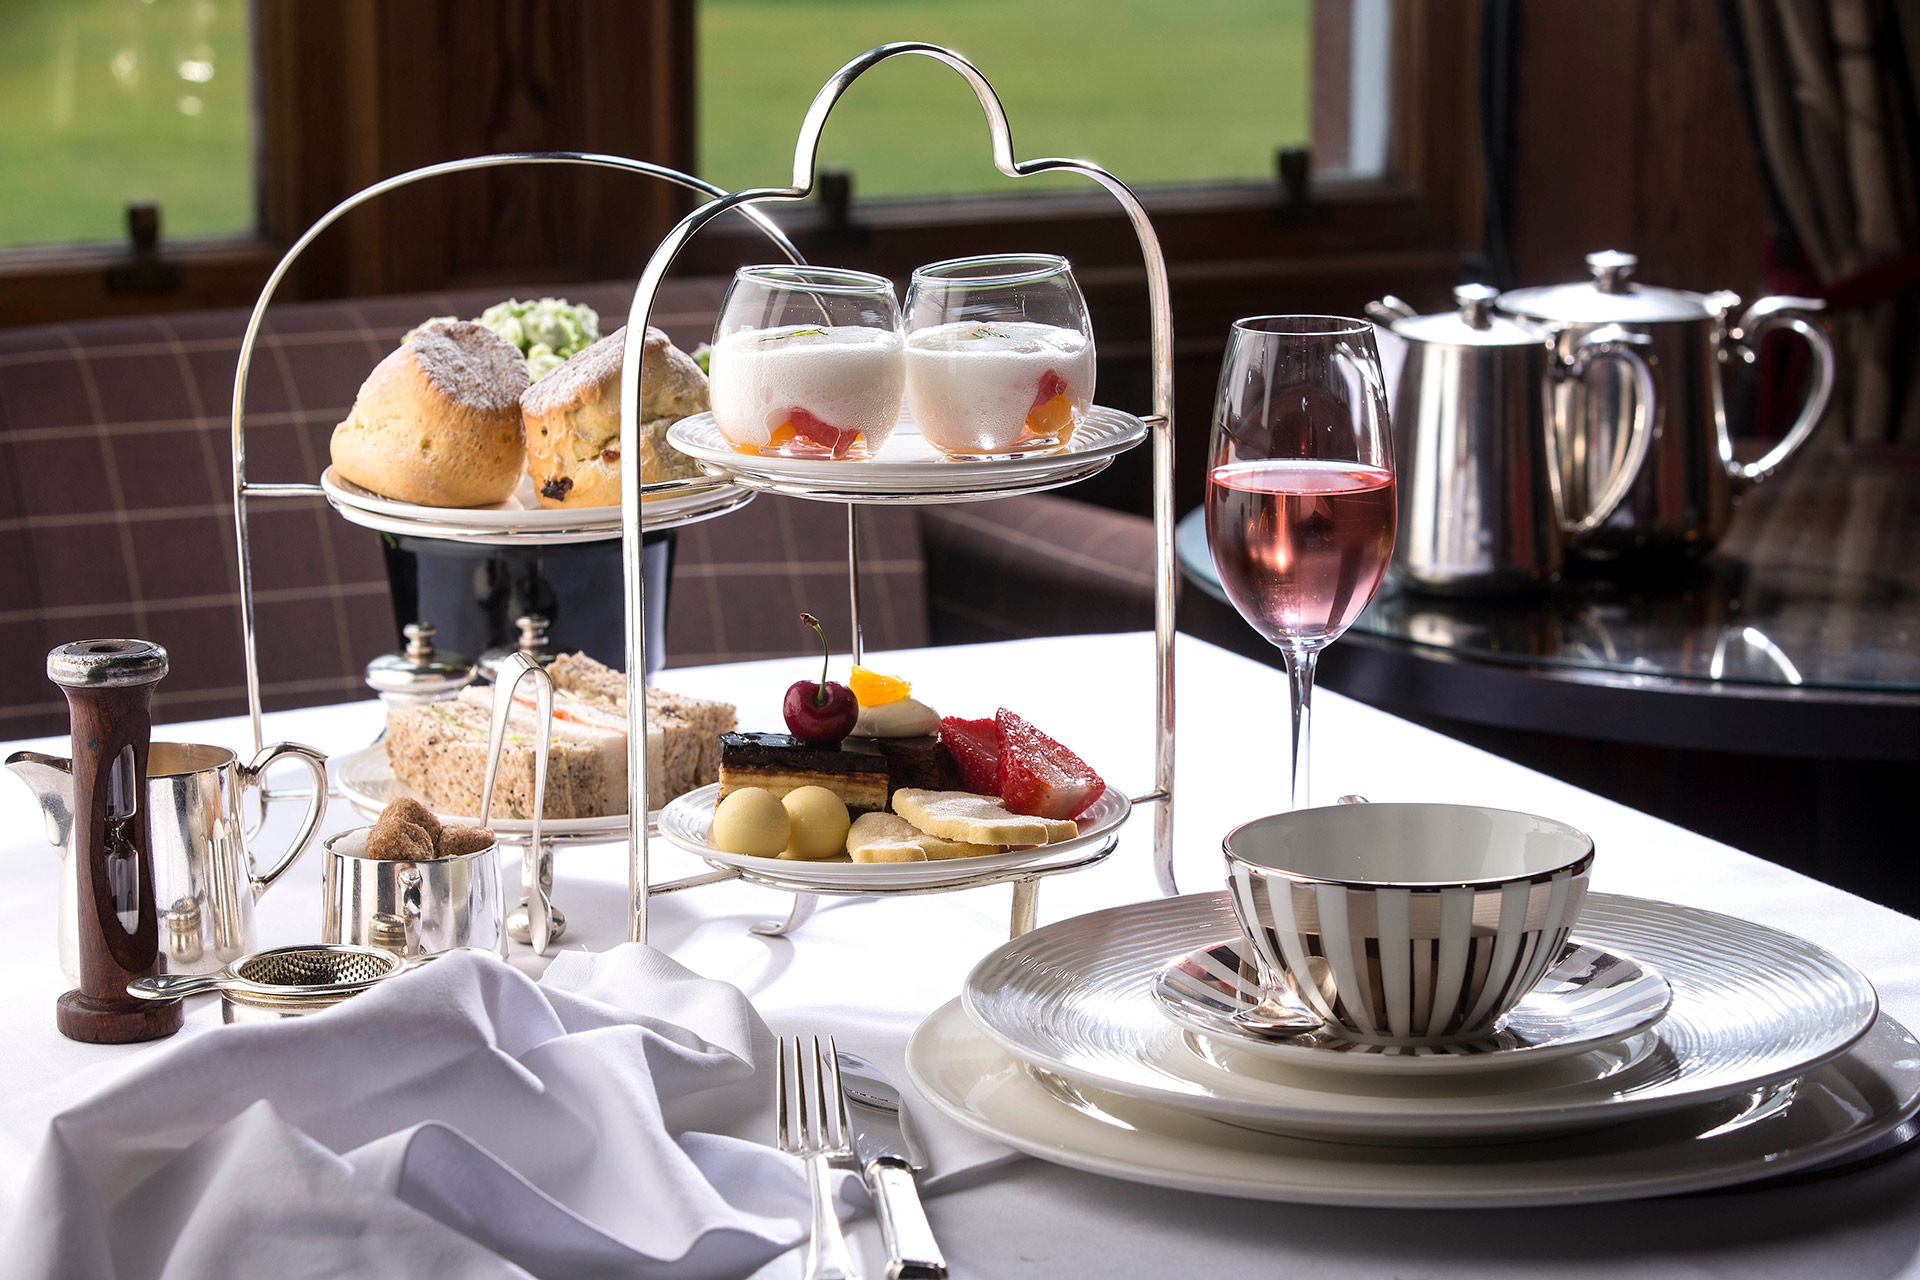 Afternoon tea at The Torridon, Wester Ross © The Torridon